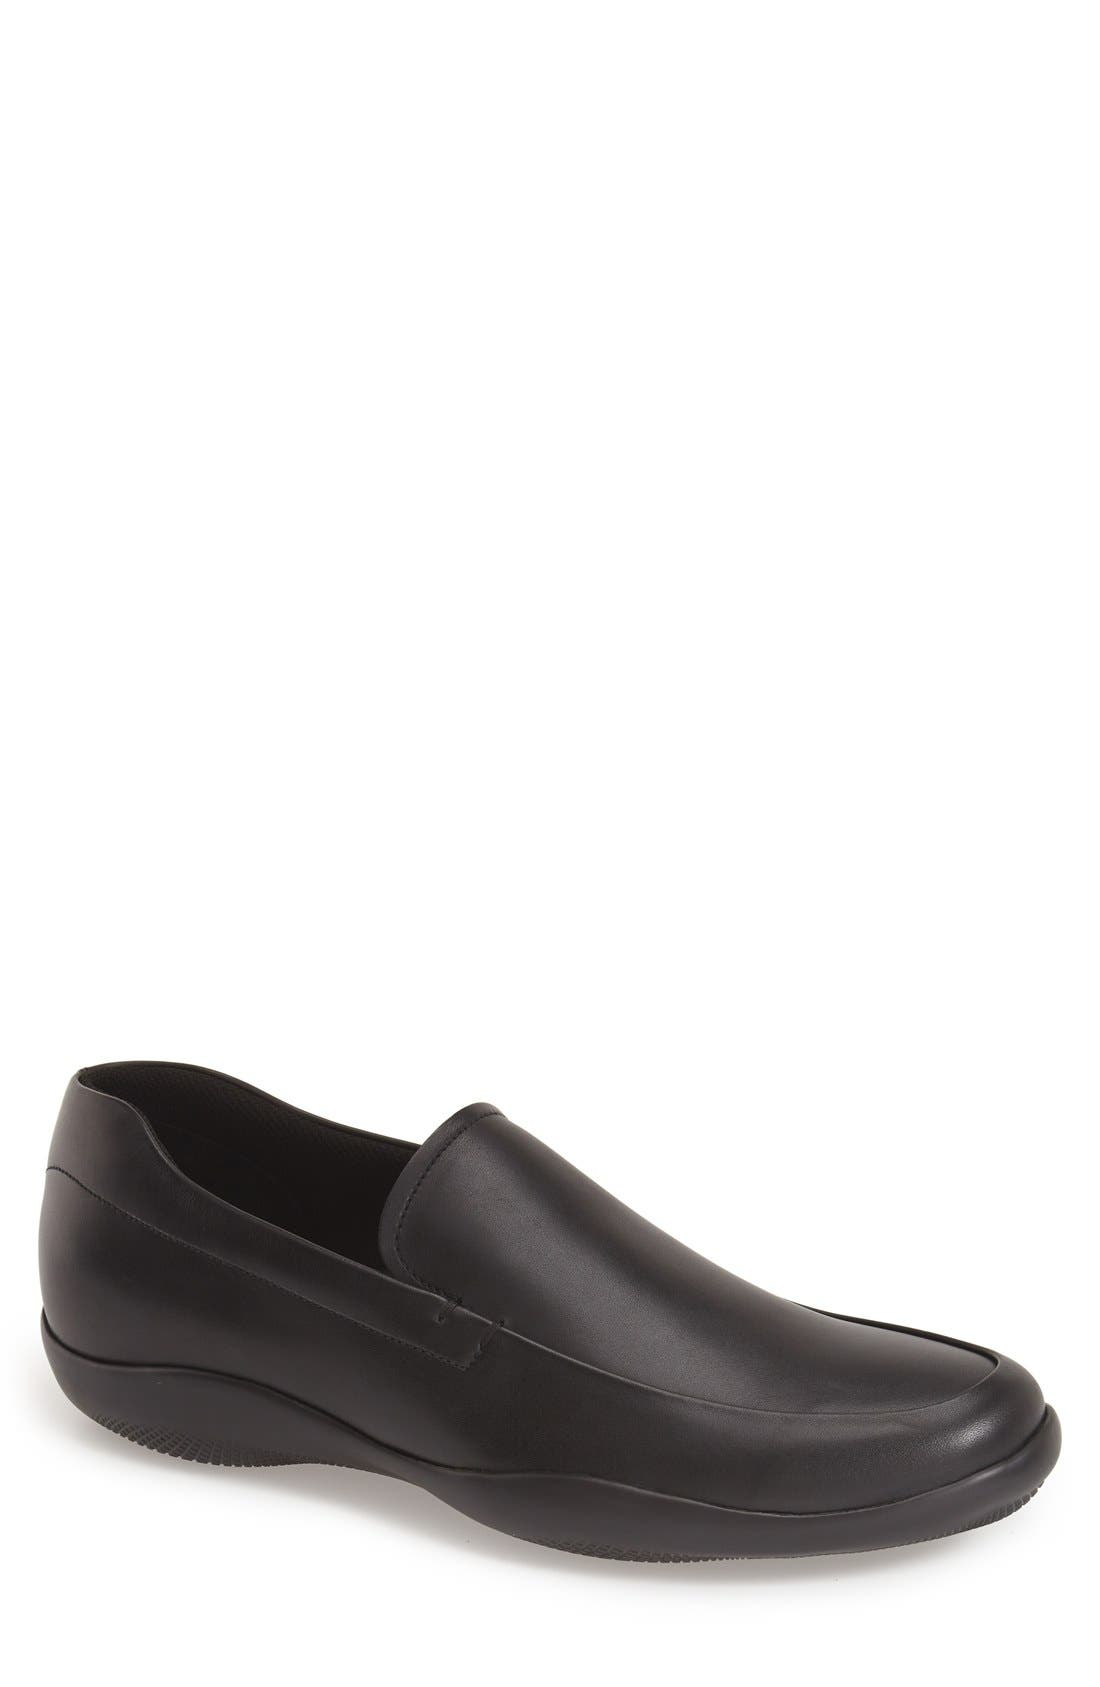 'New Toblak' Venetian Loafer,                             Main thumbnail 1, color,                             001